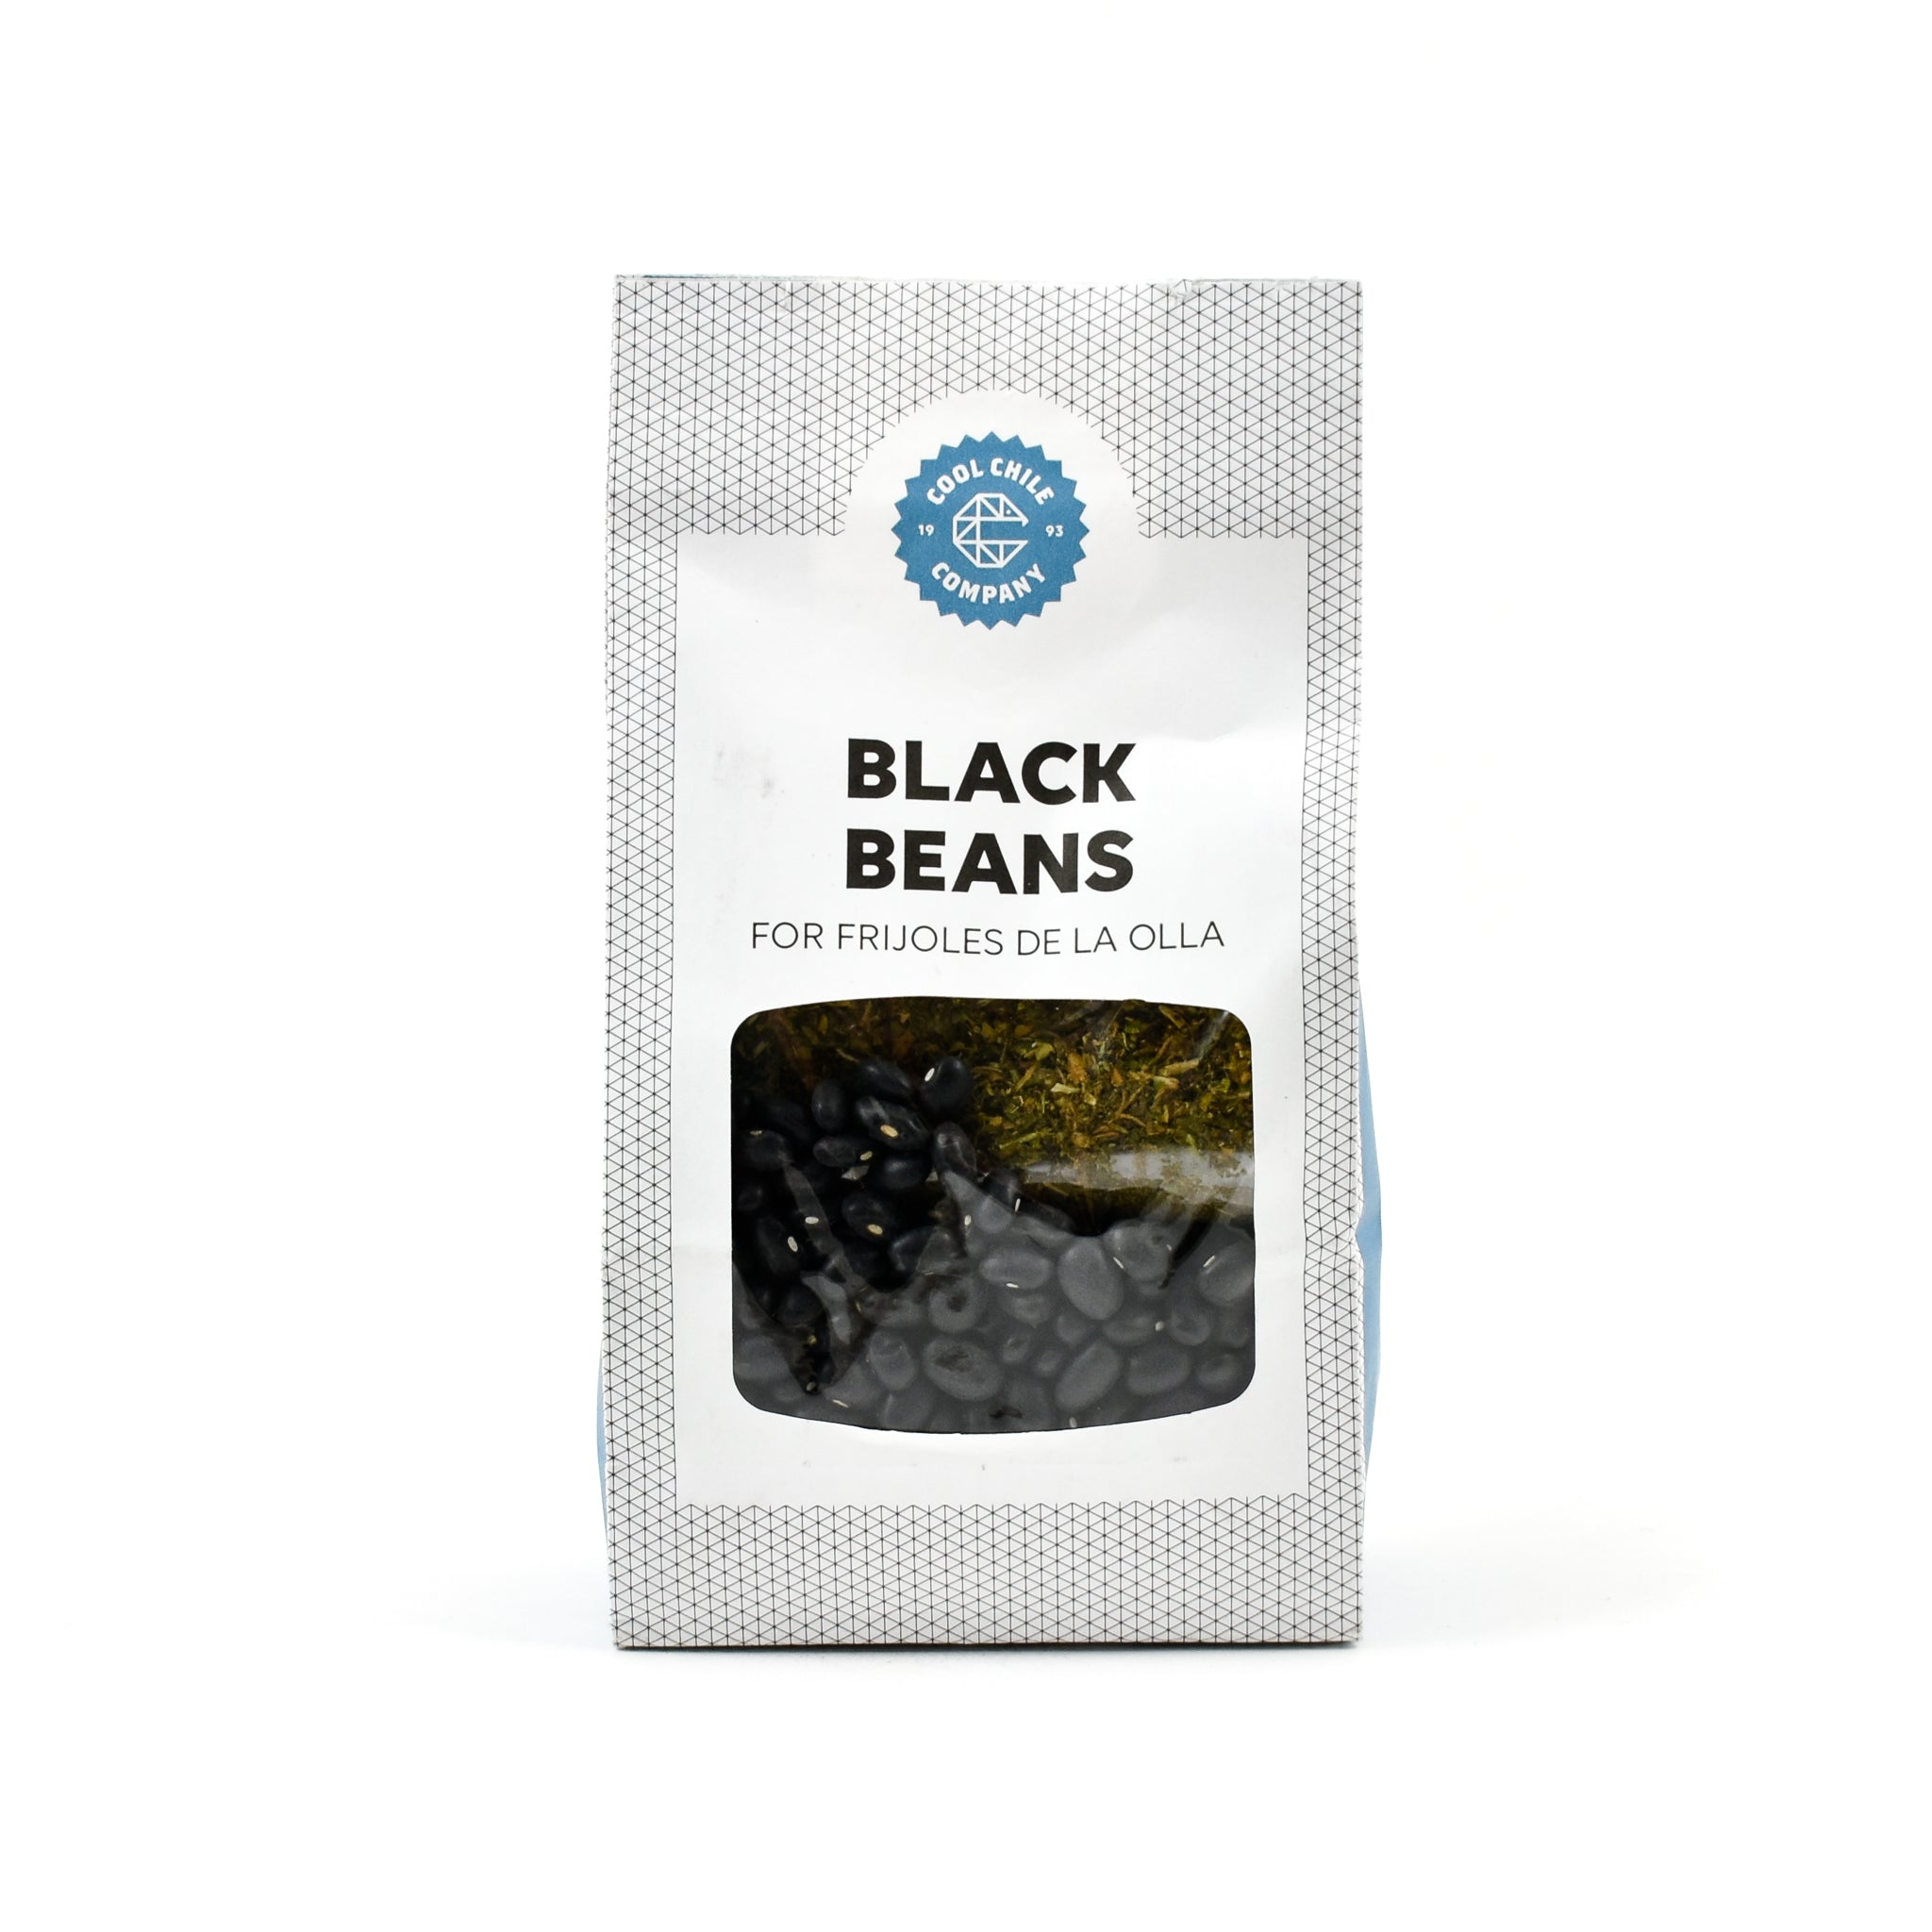 Cool Chile Co Black Bean Kit 250g Ingredients Mexican Food